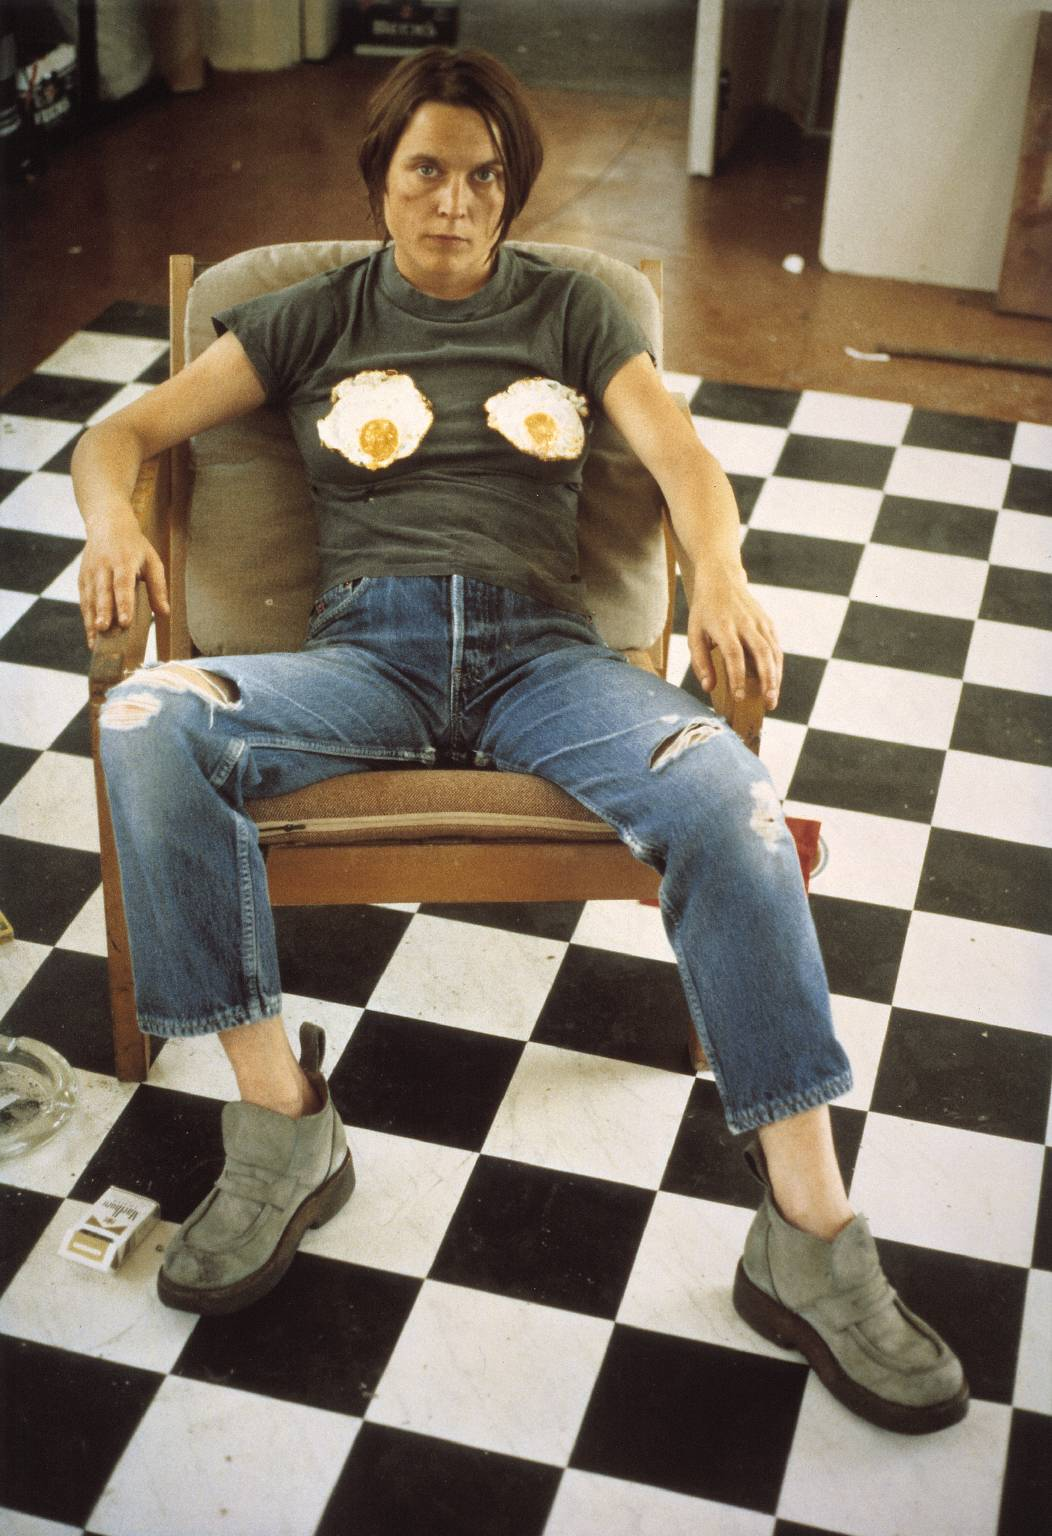 Sarah Lucas, Self-portrait with Fried Eggs, 1996